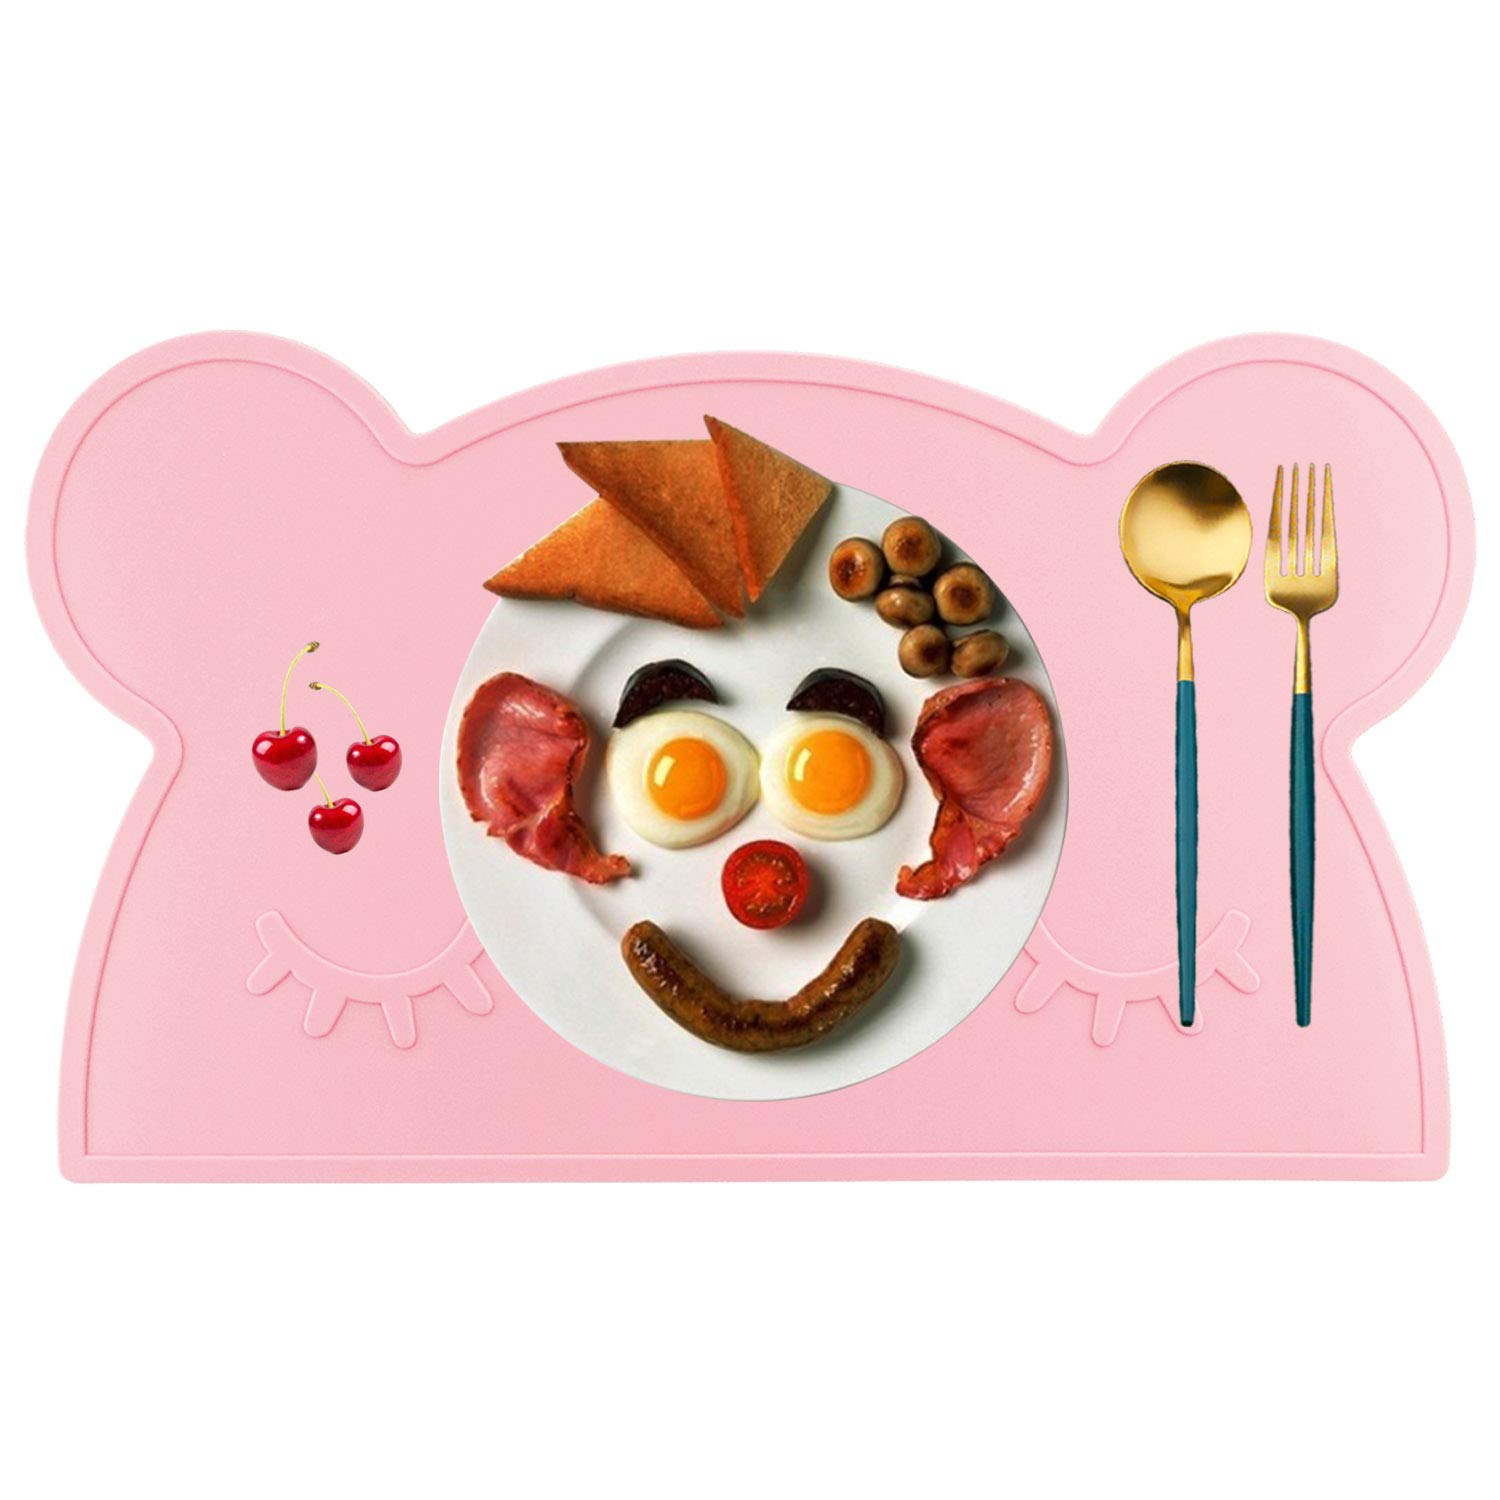 M MOACC Kids Placemat, Non-Slip Silicone Cute Placemats for Kids, Washable Dining Table Food Mat for Children Baby Toddler (Bear,Pink)